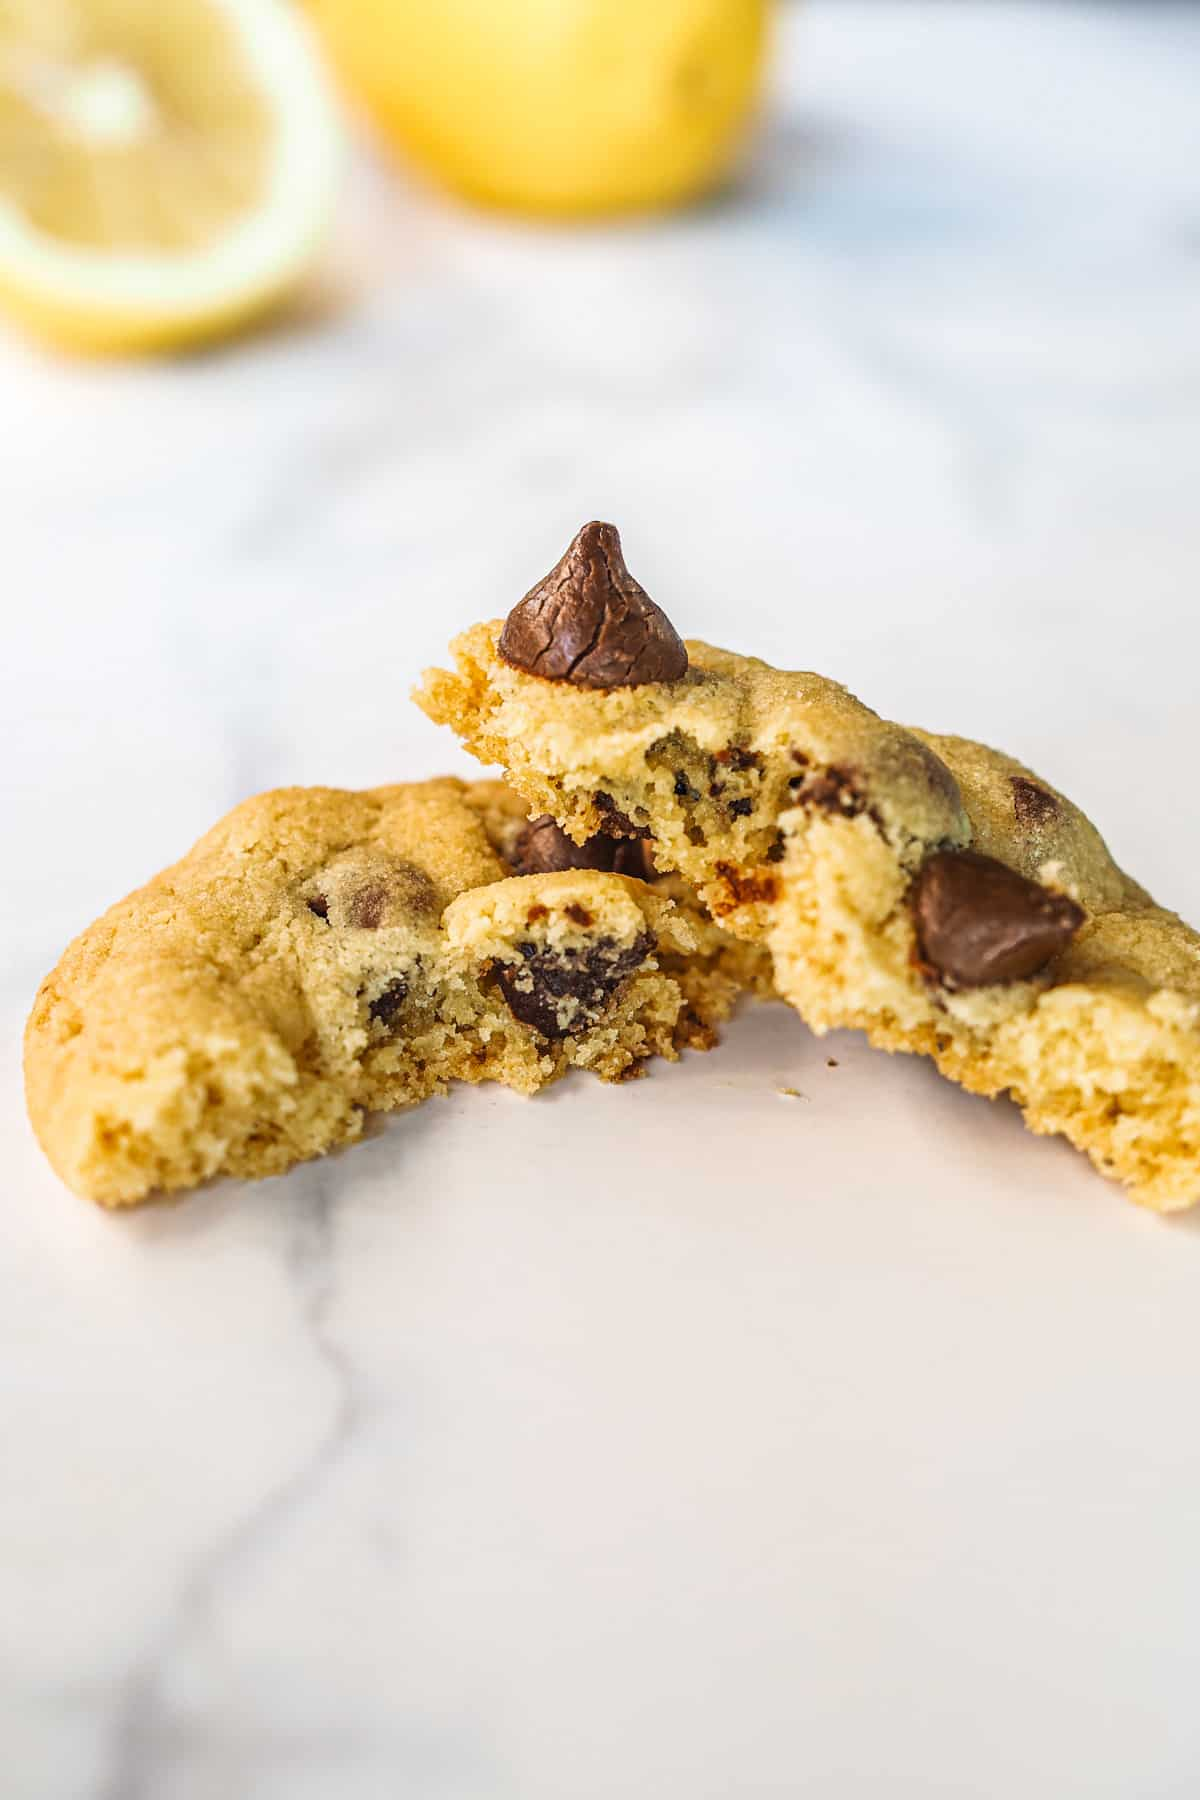 A chocolate chip cookie broken into 2